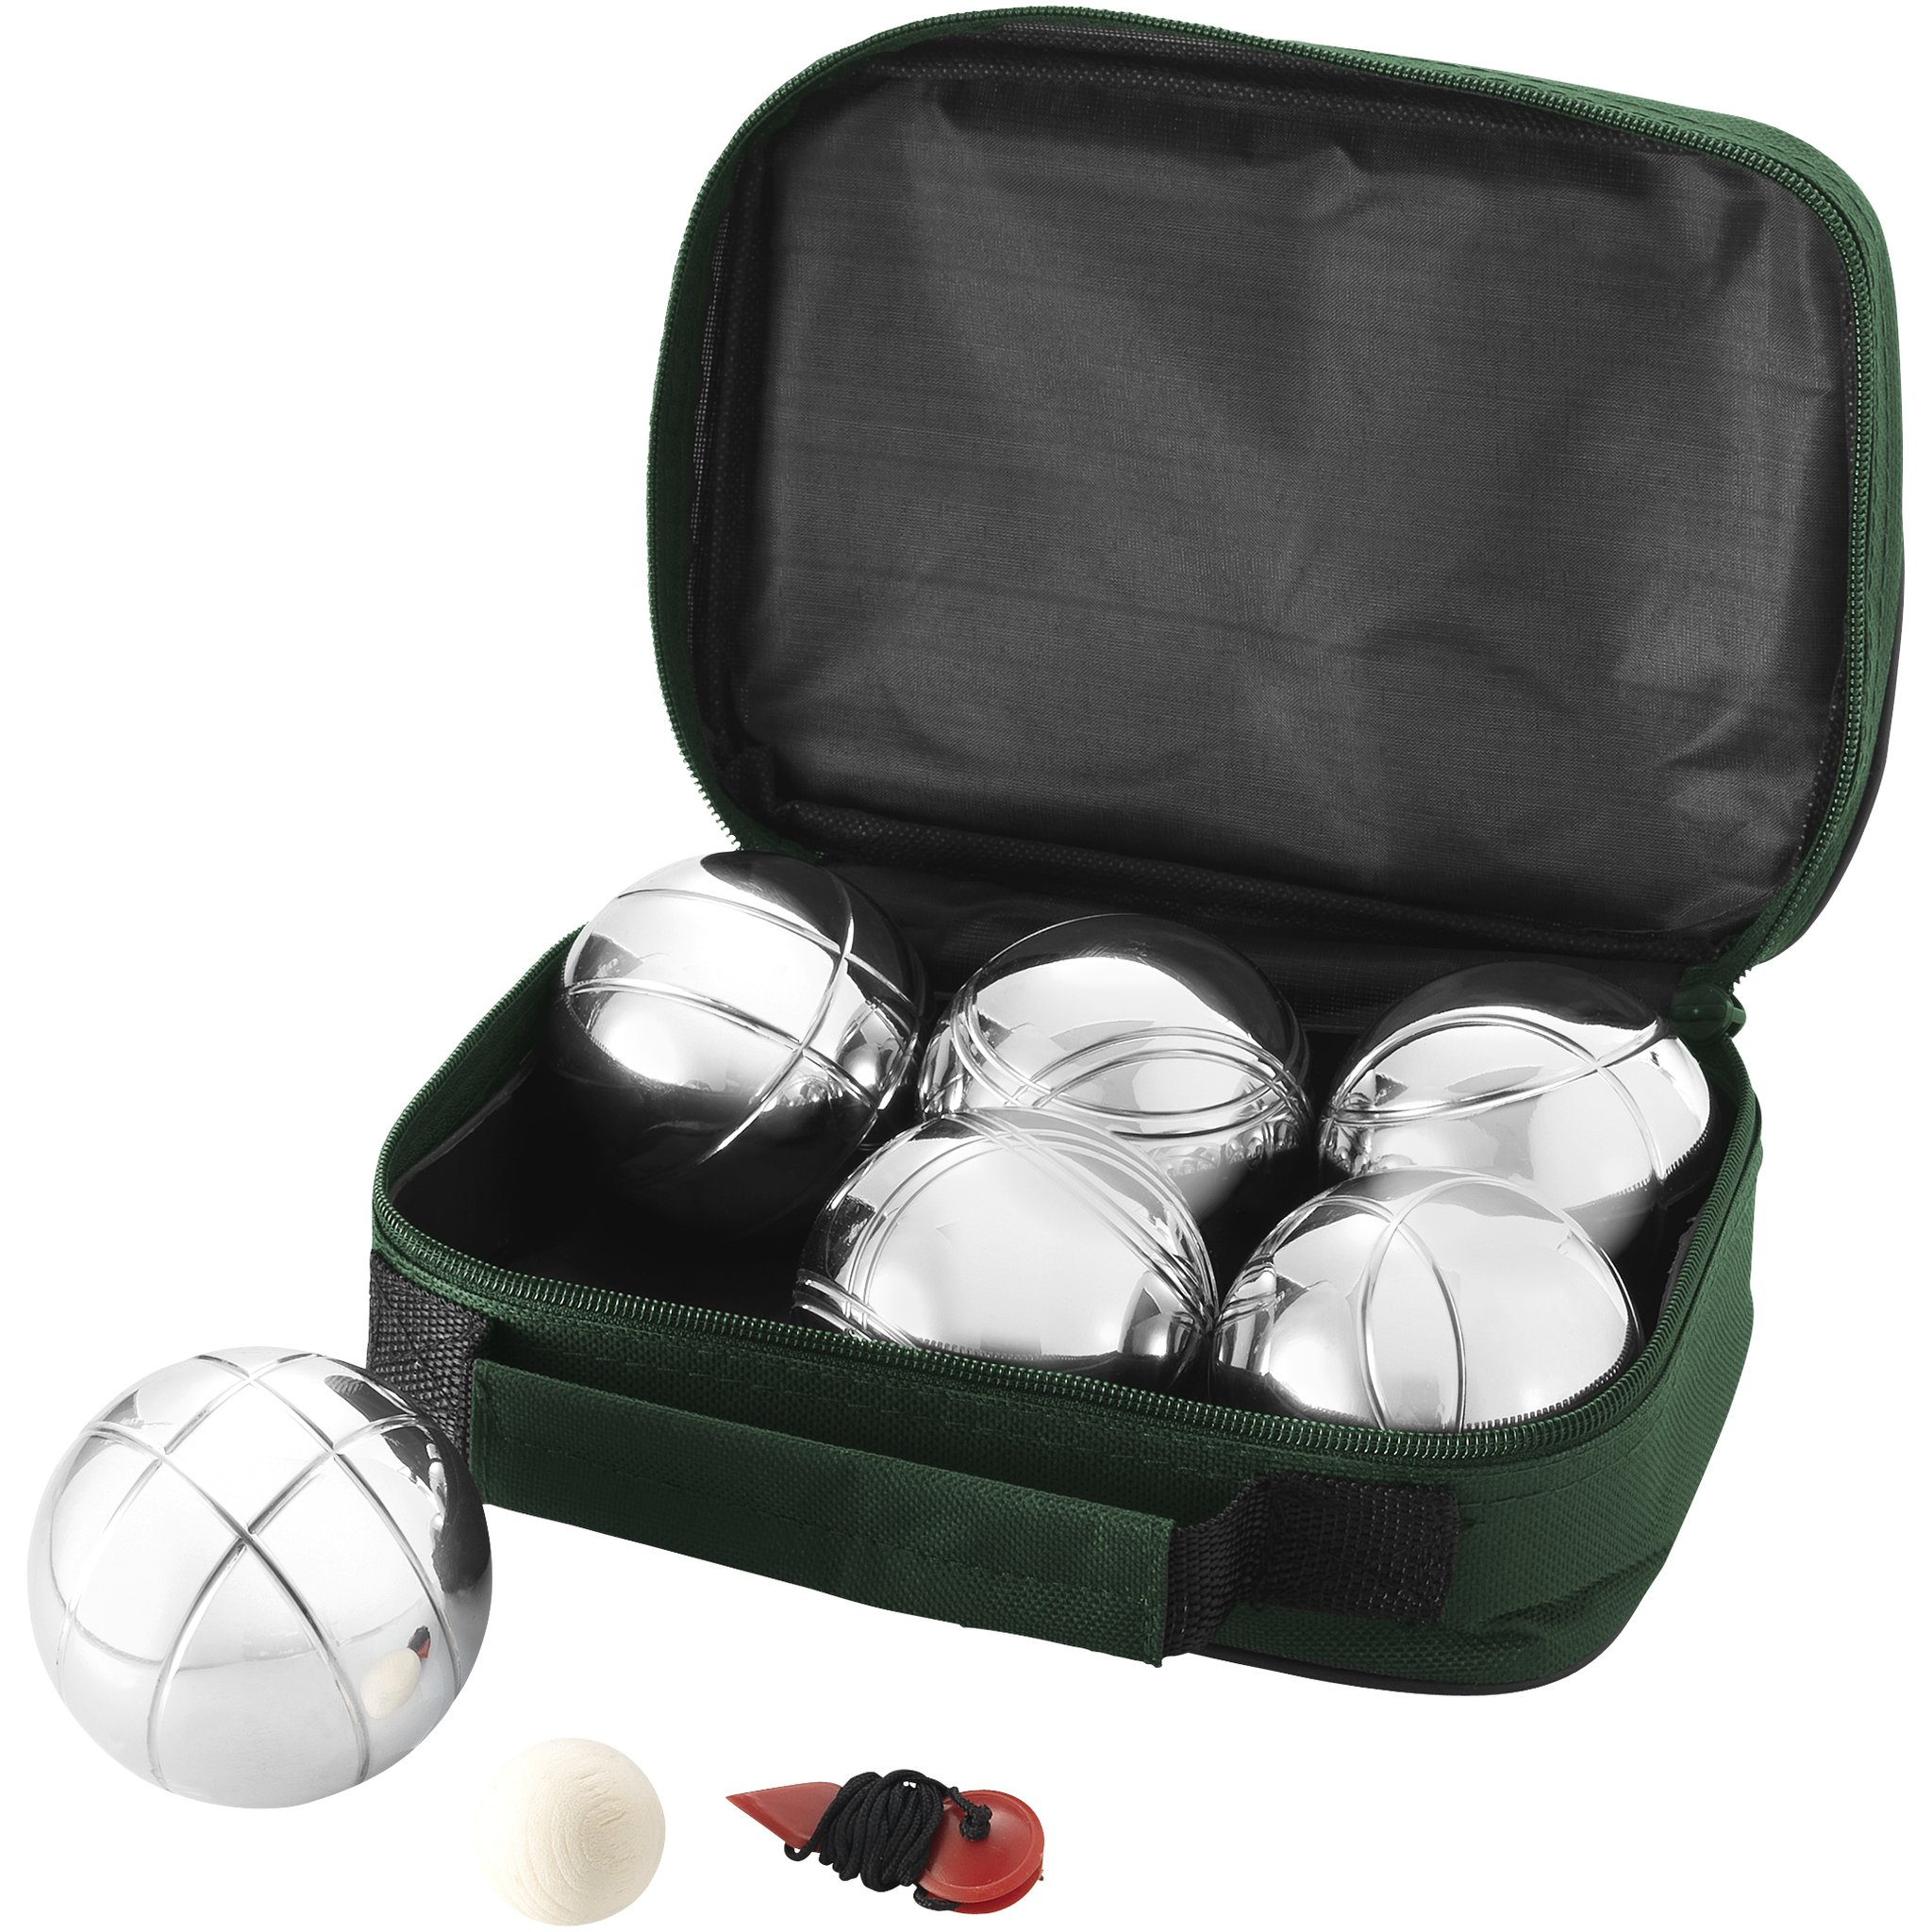 Bullet Henri 6-Ball Petanque Set (Pack of 2) (9.3 x 7.1 x 3 inches) (Green/Silver)